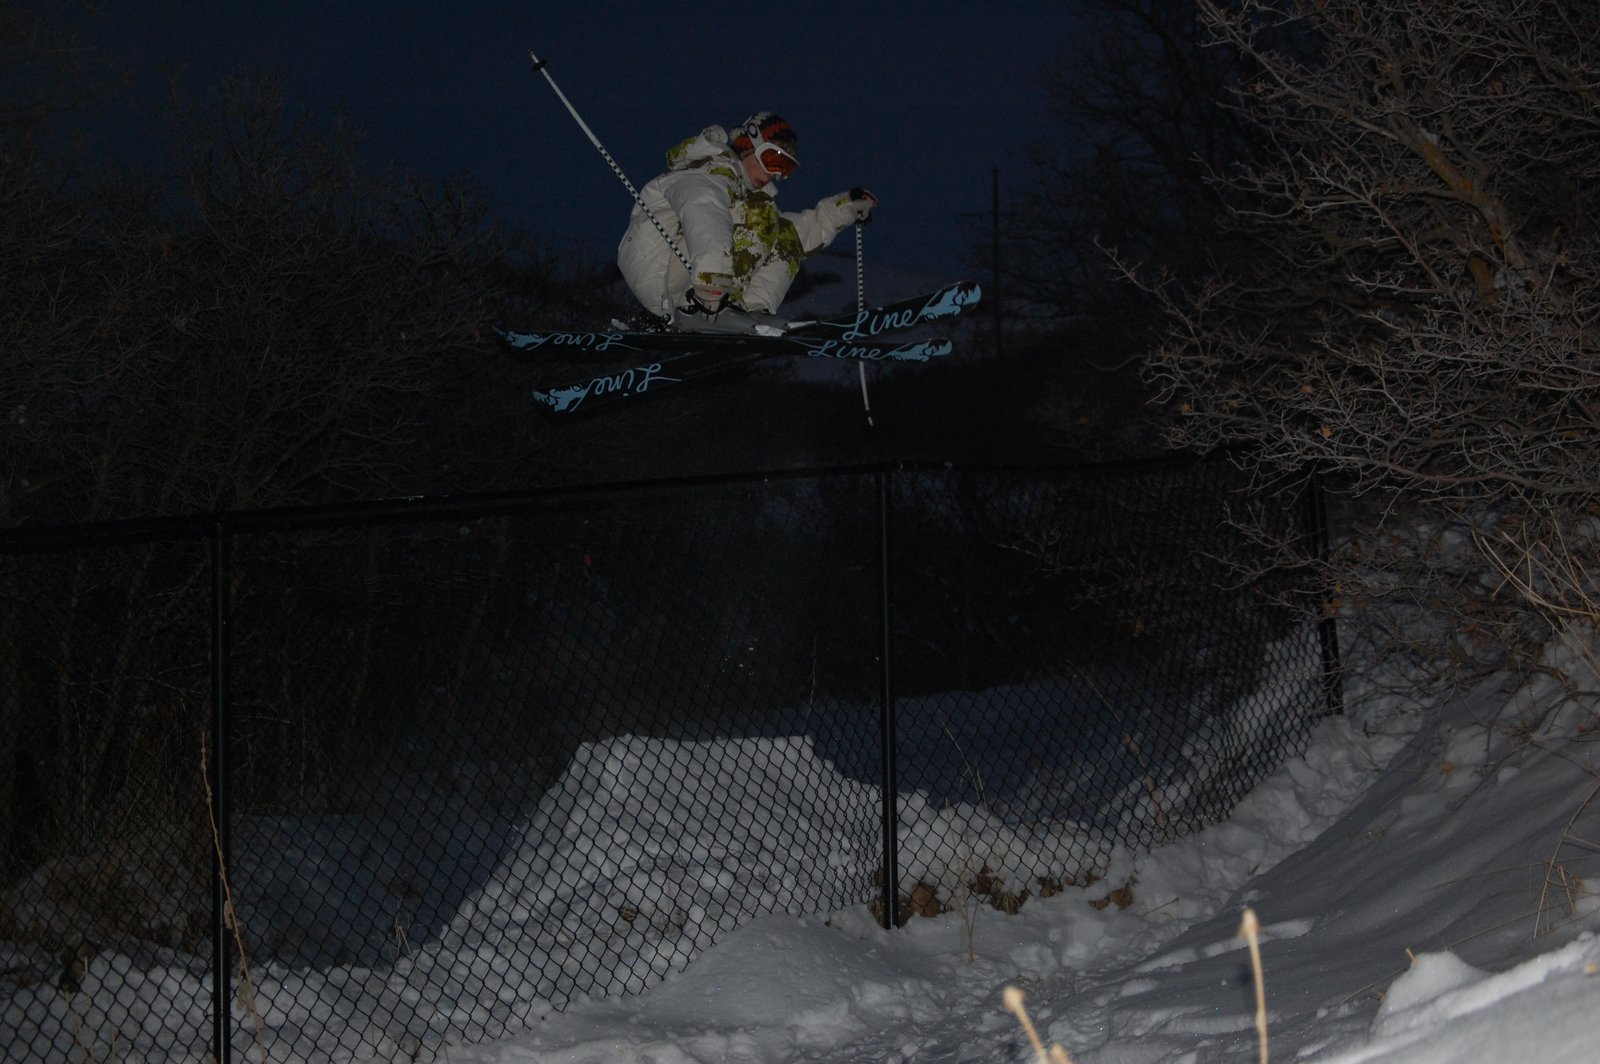 180 over the fence at night